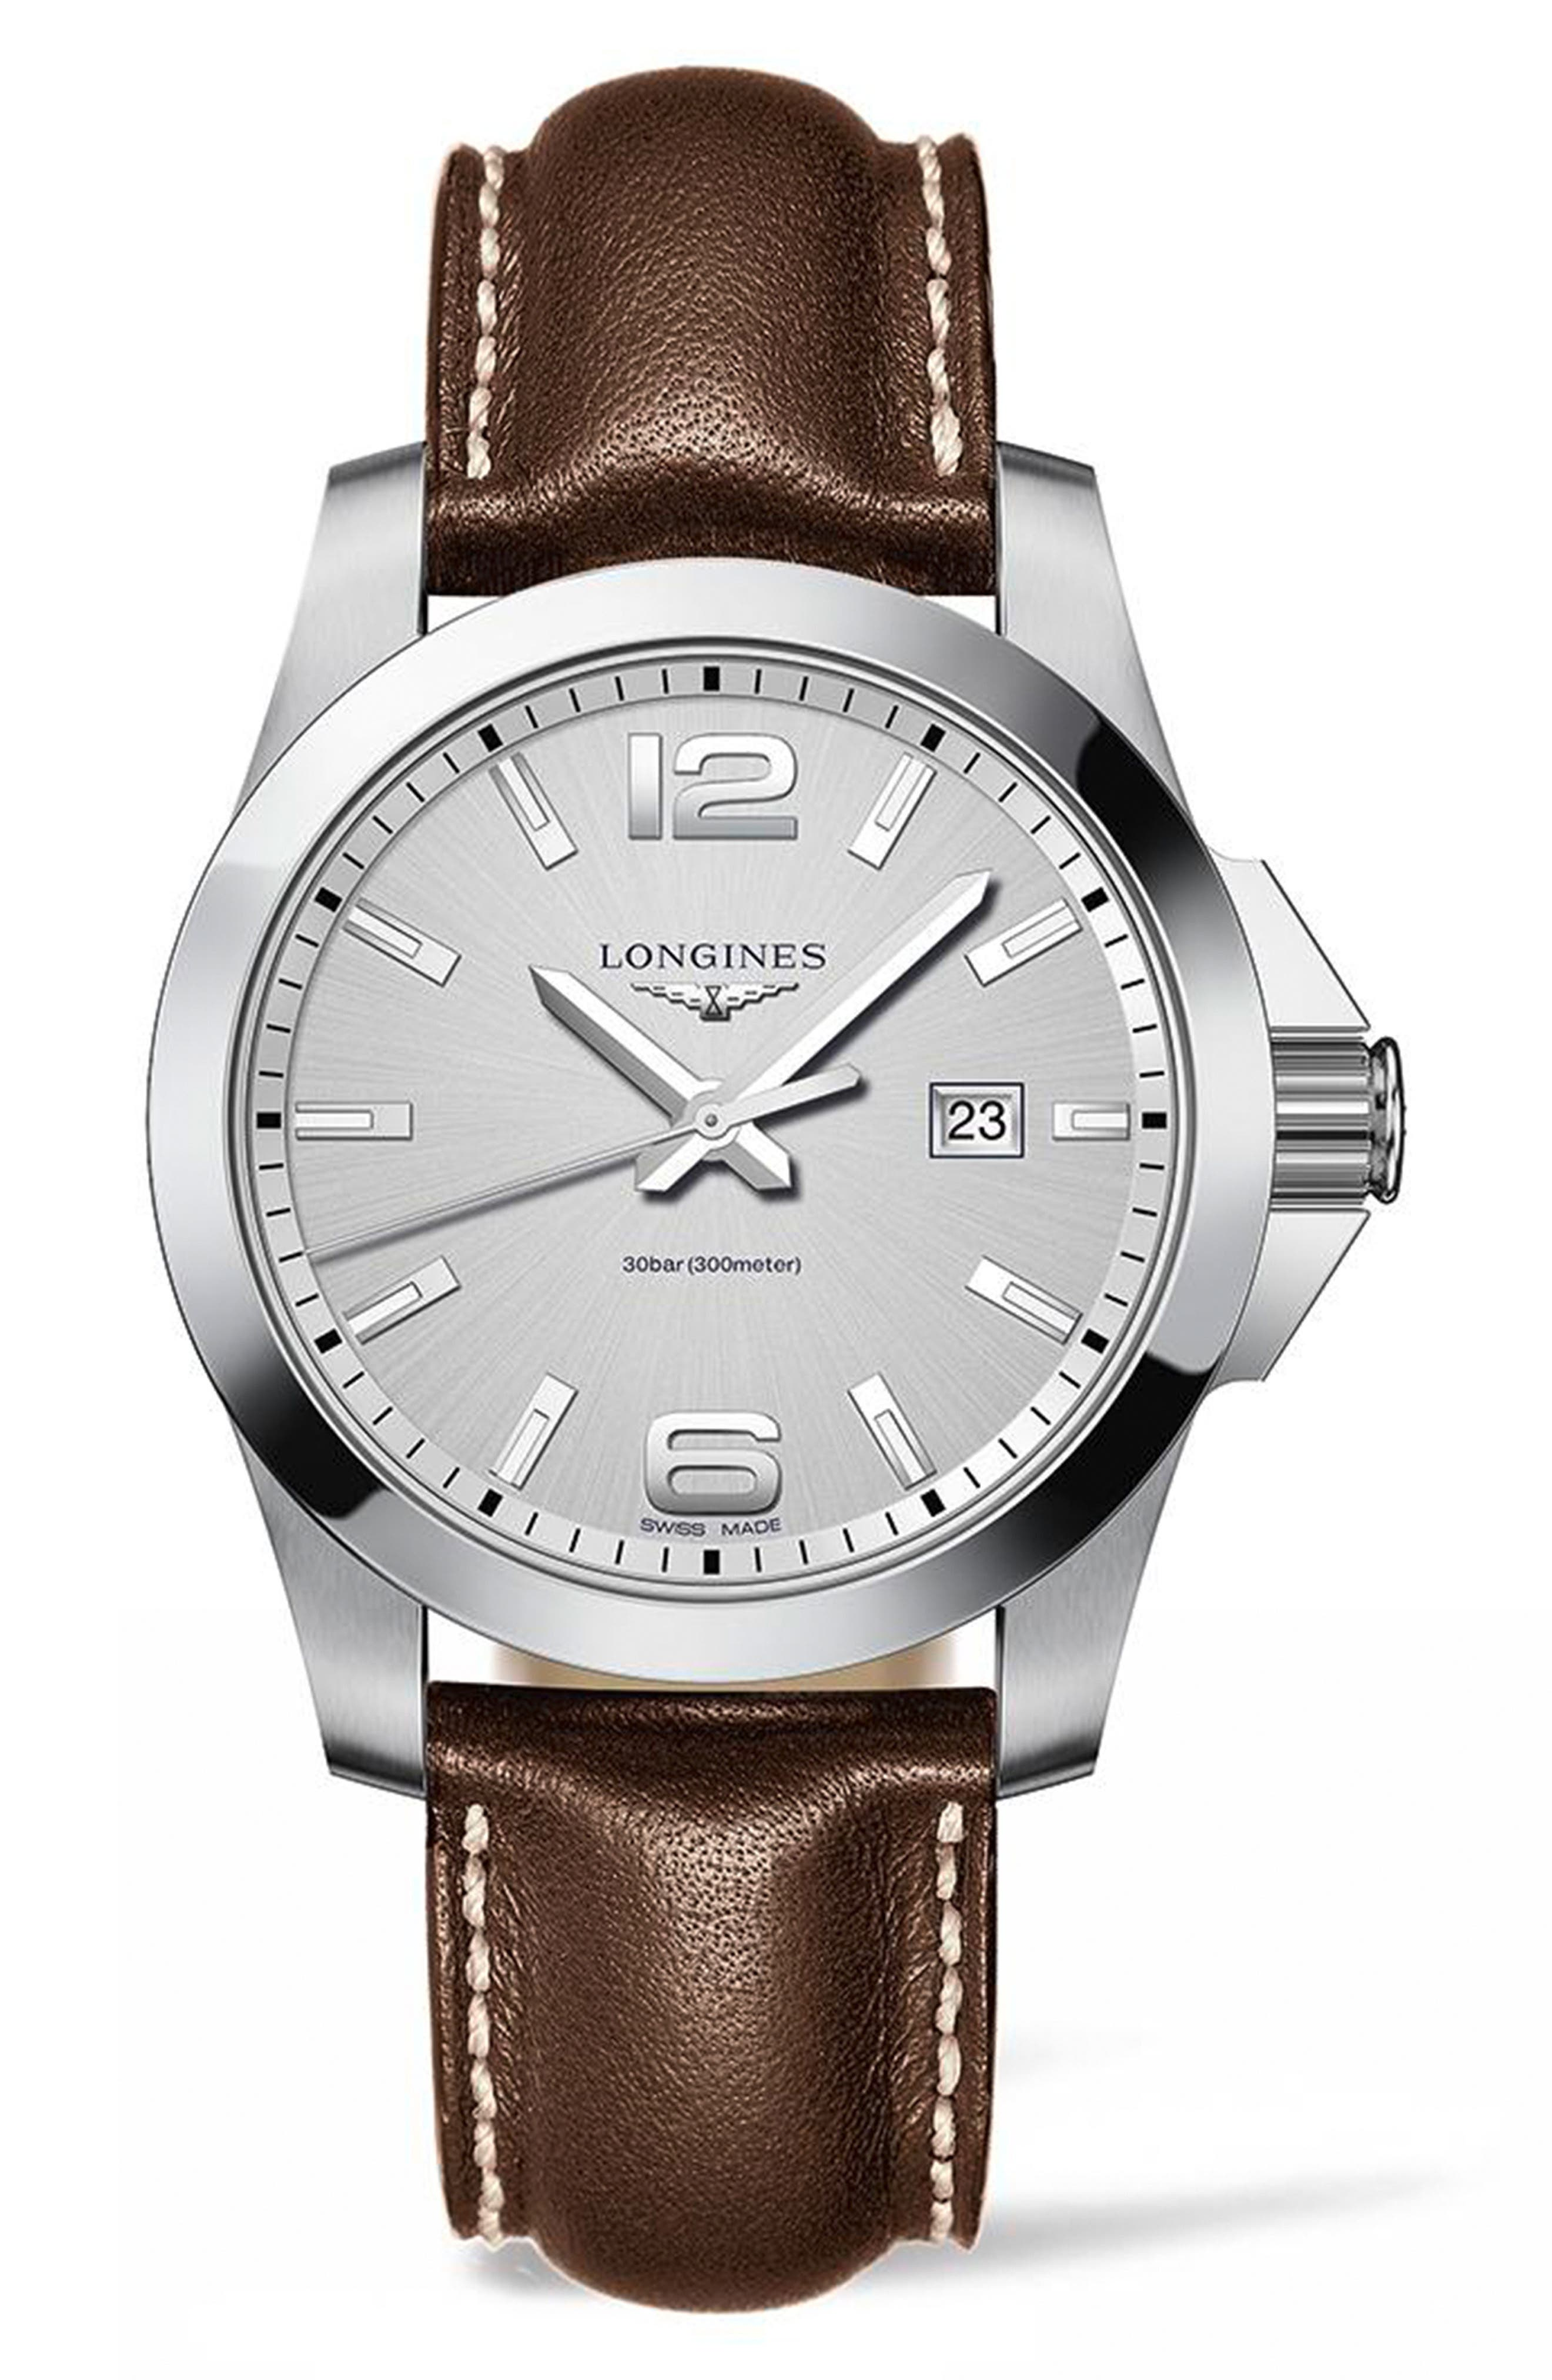 Conquest Classic Leather Strap Watch